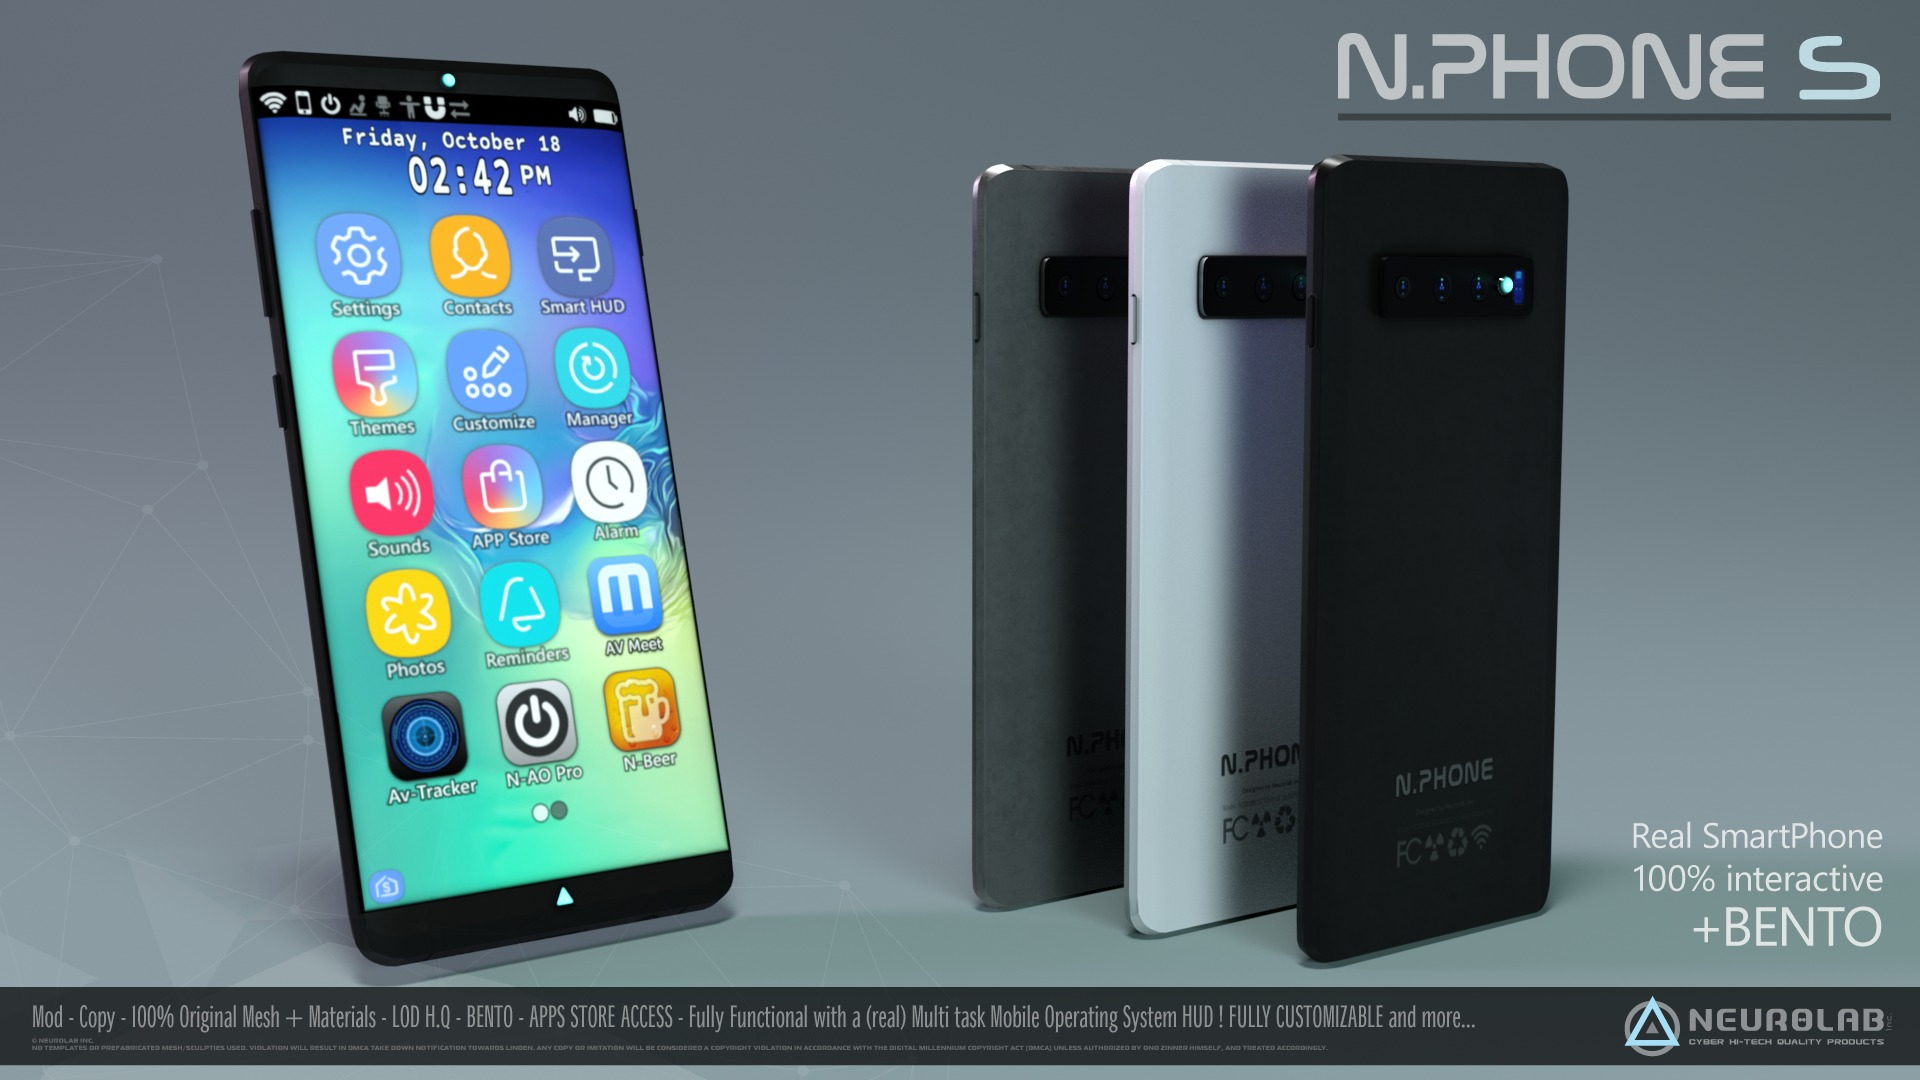 N.PHONE S (Real SmartPhone with AIO HUD) *NEW*